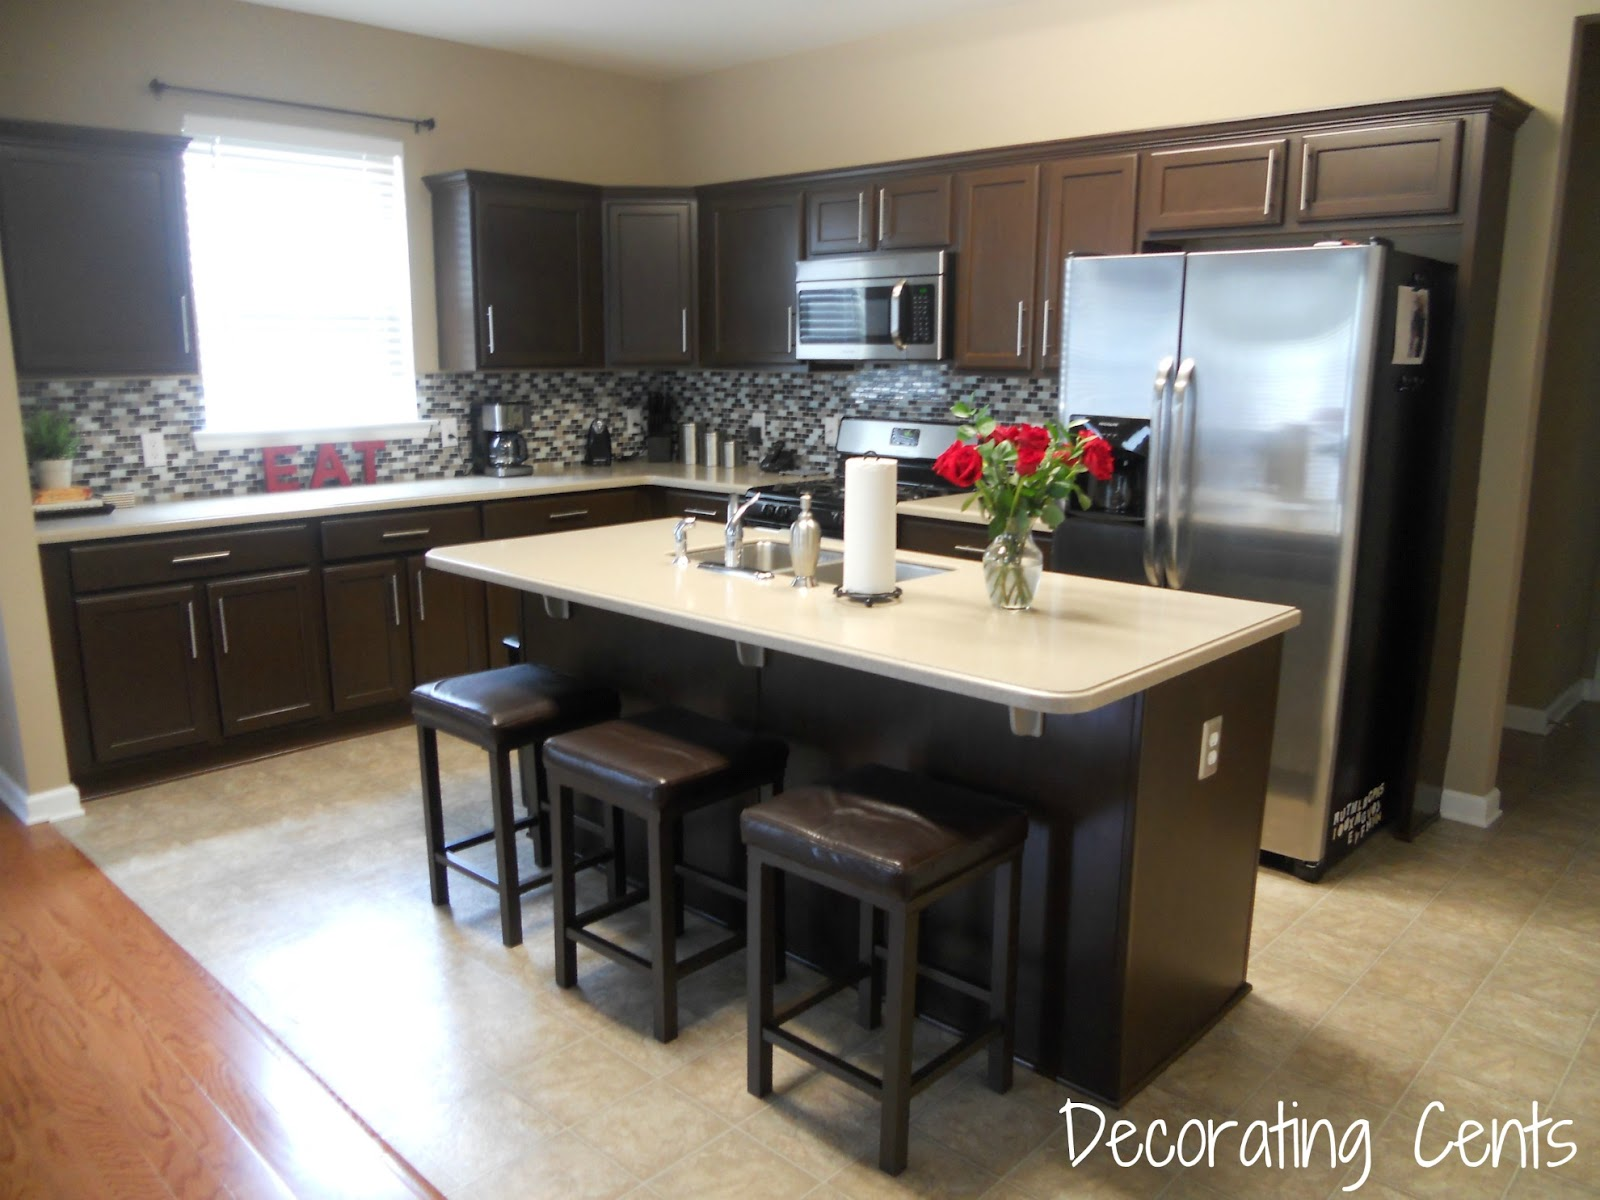 Decorating Cents: Our Fifth House: Kitchen Remodel Update 3-D Rendering organization wins rest room, kitchen layout honors Davis Enterprise Tour Remodeling / Finishing Washington DC most essential room of the house? Cabinets Revealed - Kitchen Pictures